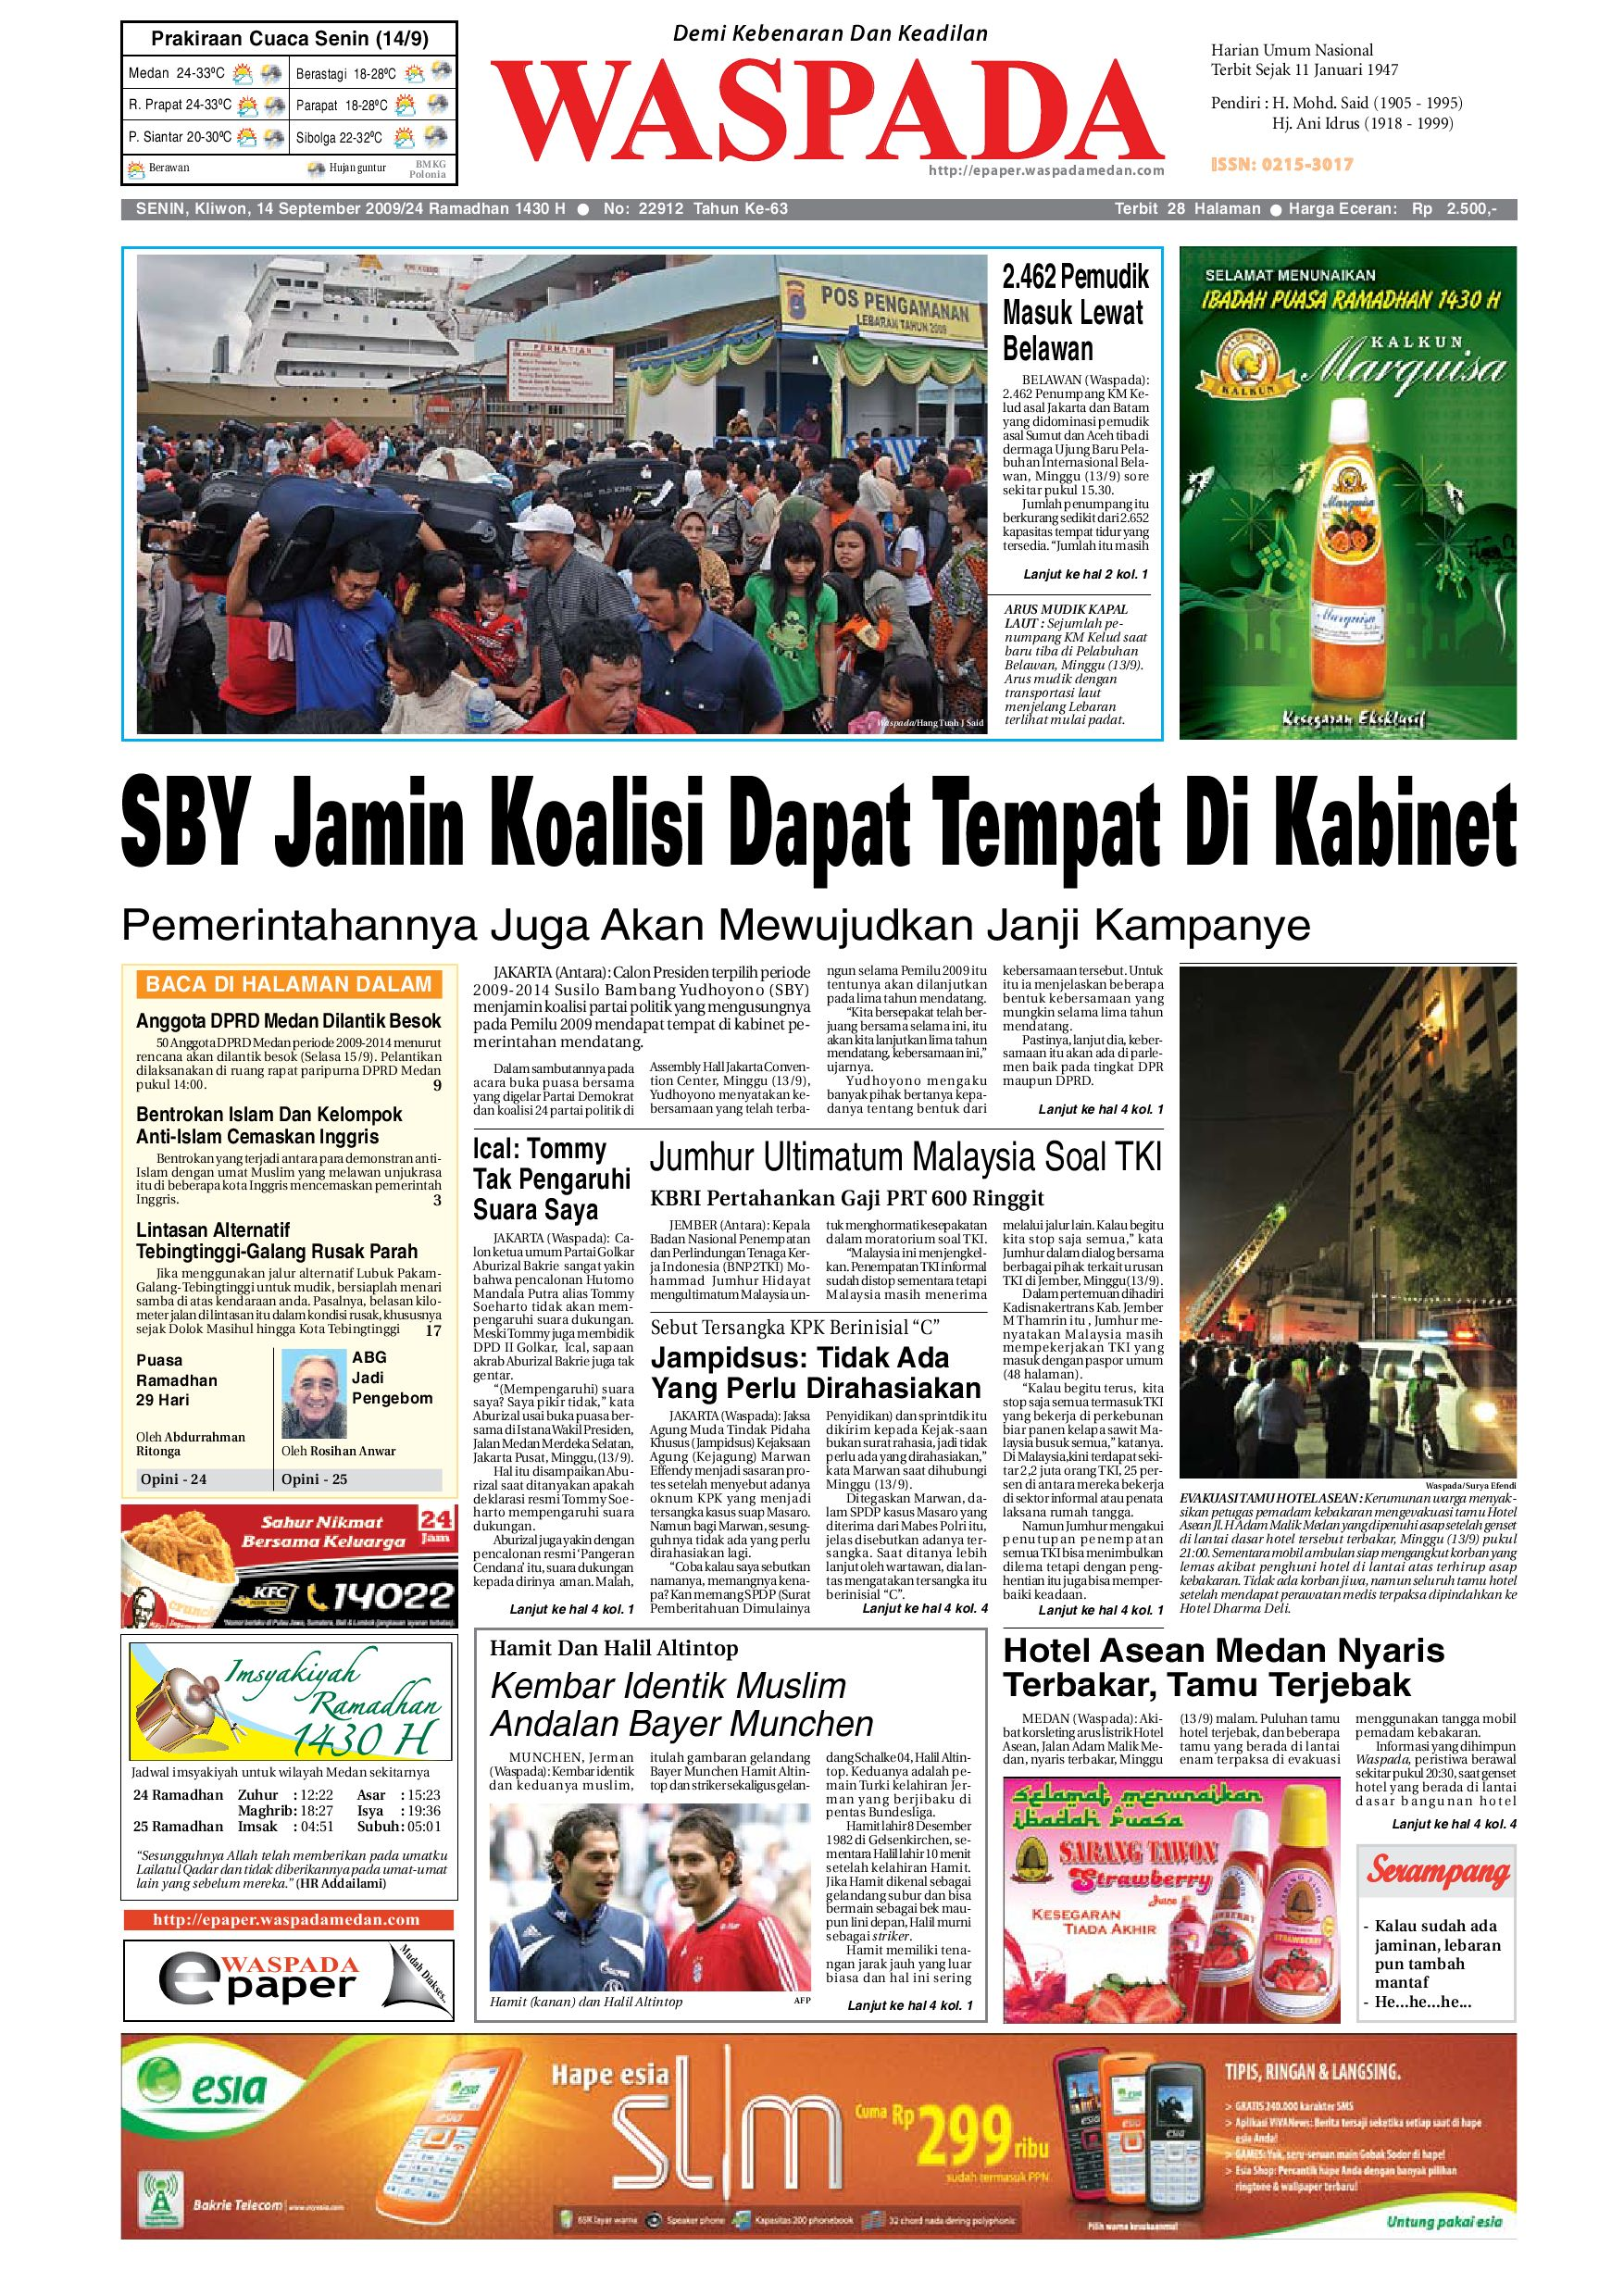 Waspada Senin 14 September 2009 By Harian Waspada Issuu